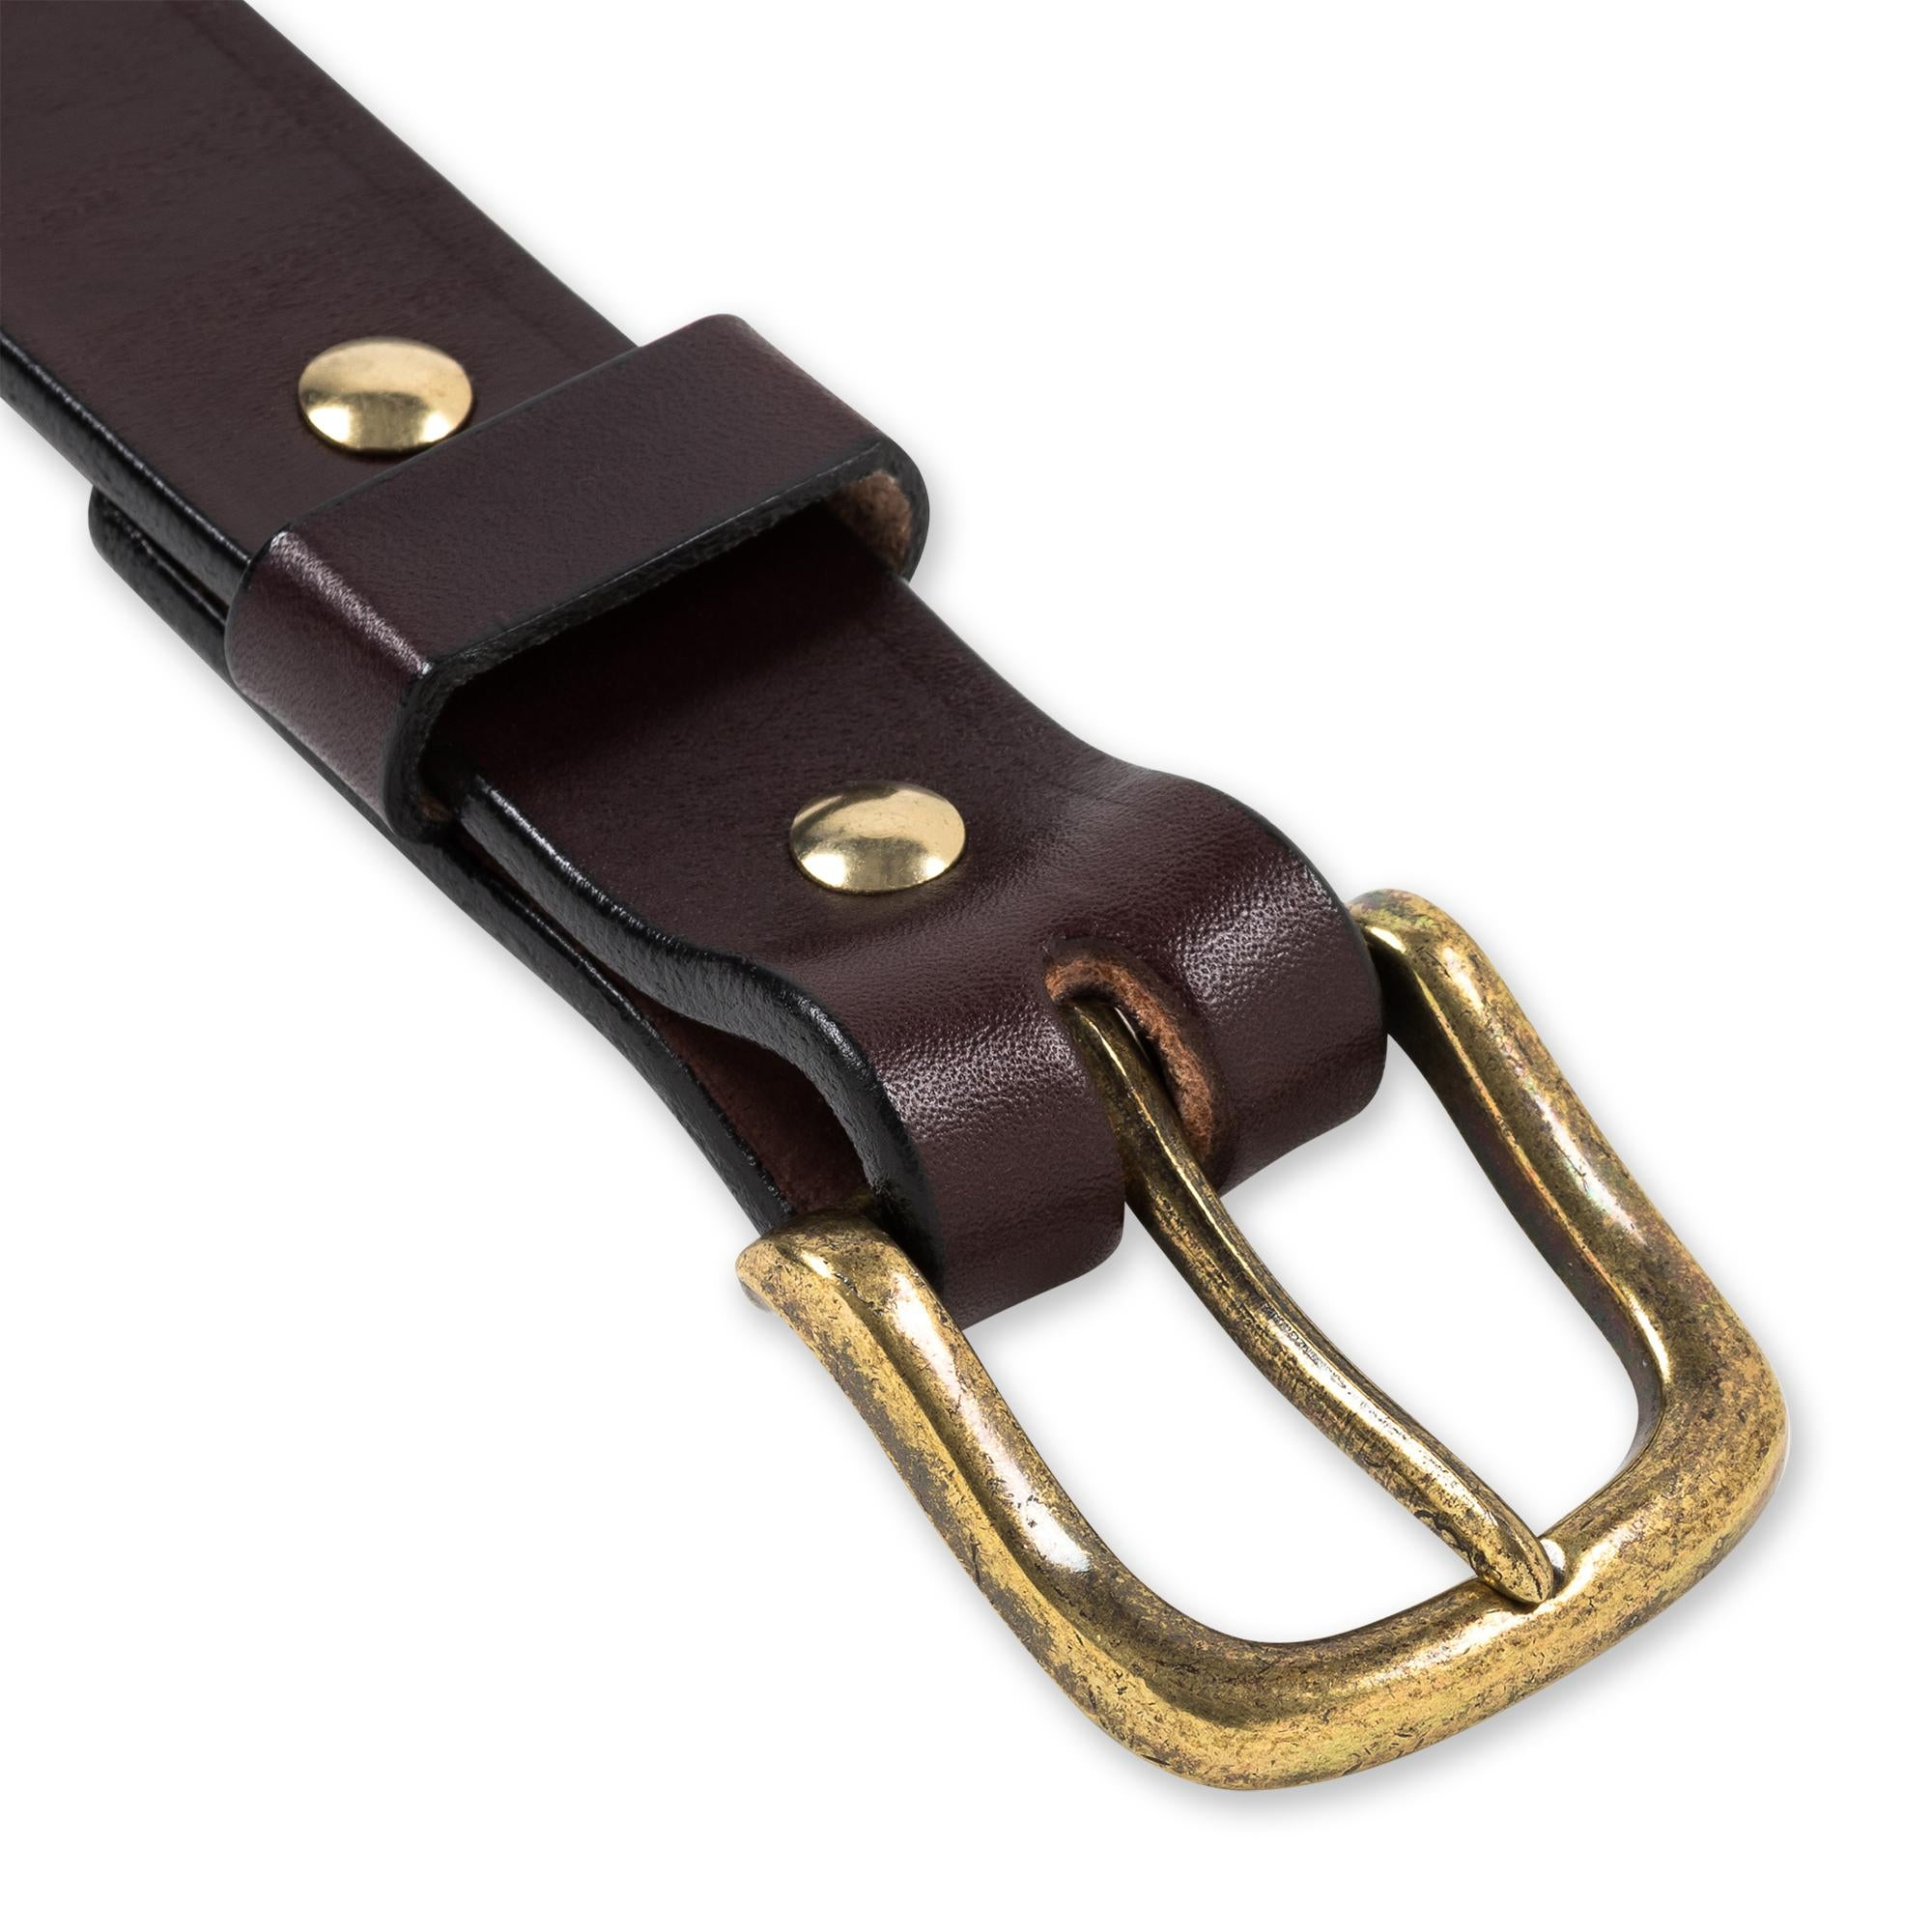 Everyday Belt in Chocolate & Antiqued Brass Belt - Blake Goods - English Bridle Leather Belt